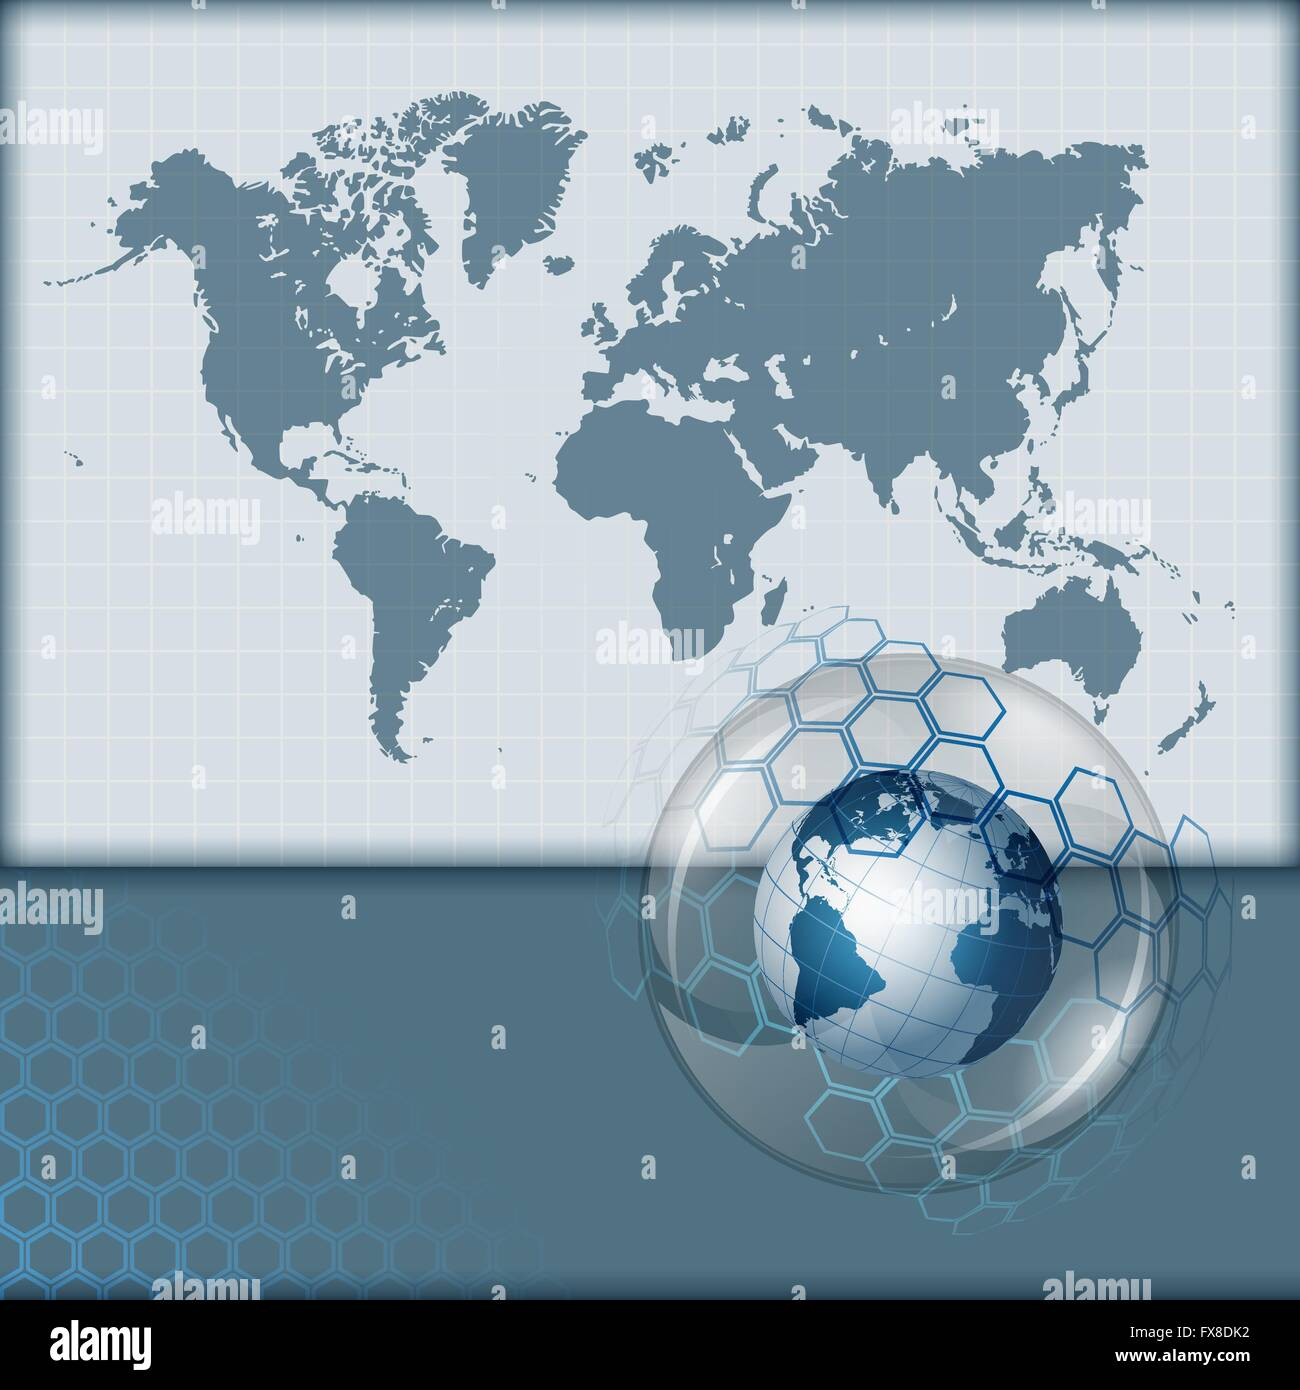 Abstract computer graphic with earth globe on world map background abstract computer graphic with earth globe on world map background gumiabroncs Gallery